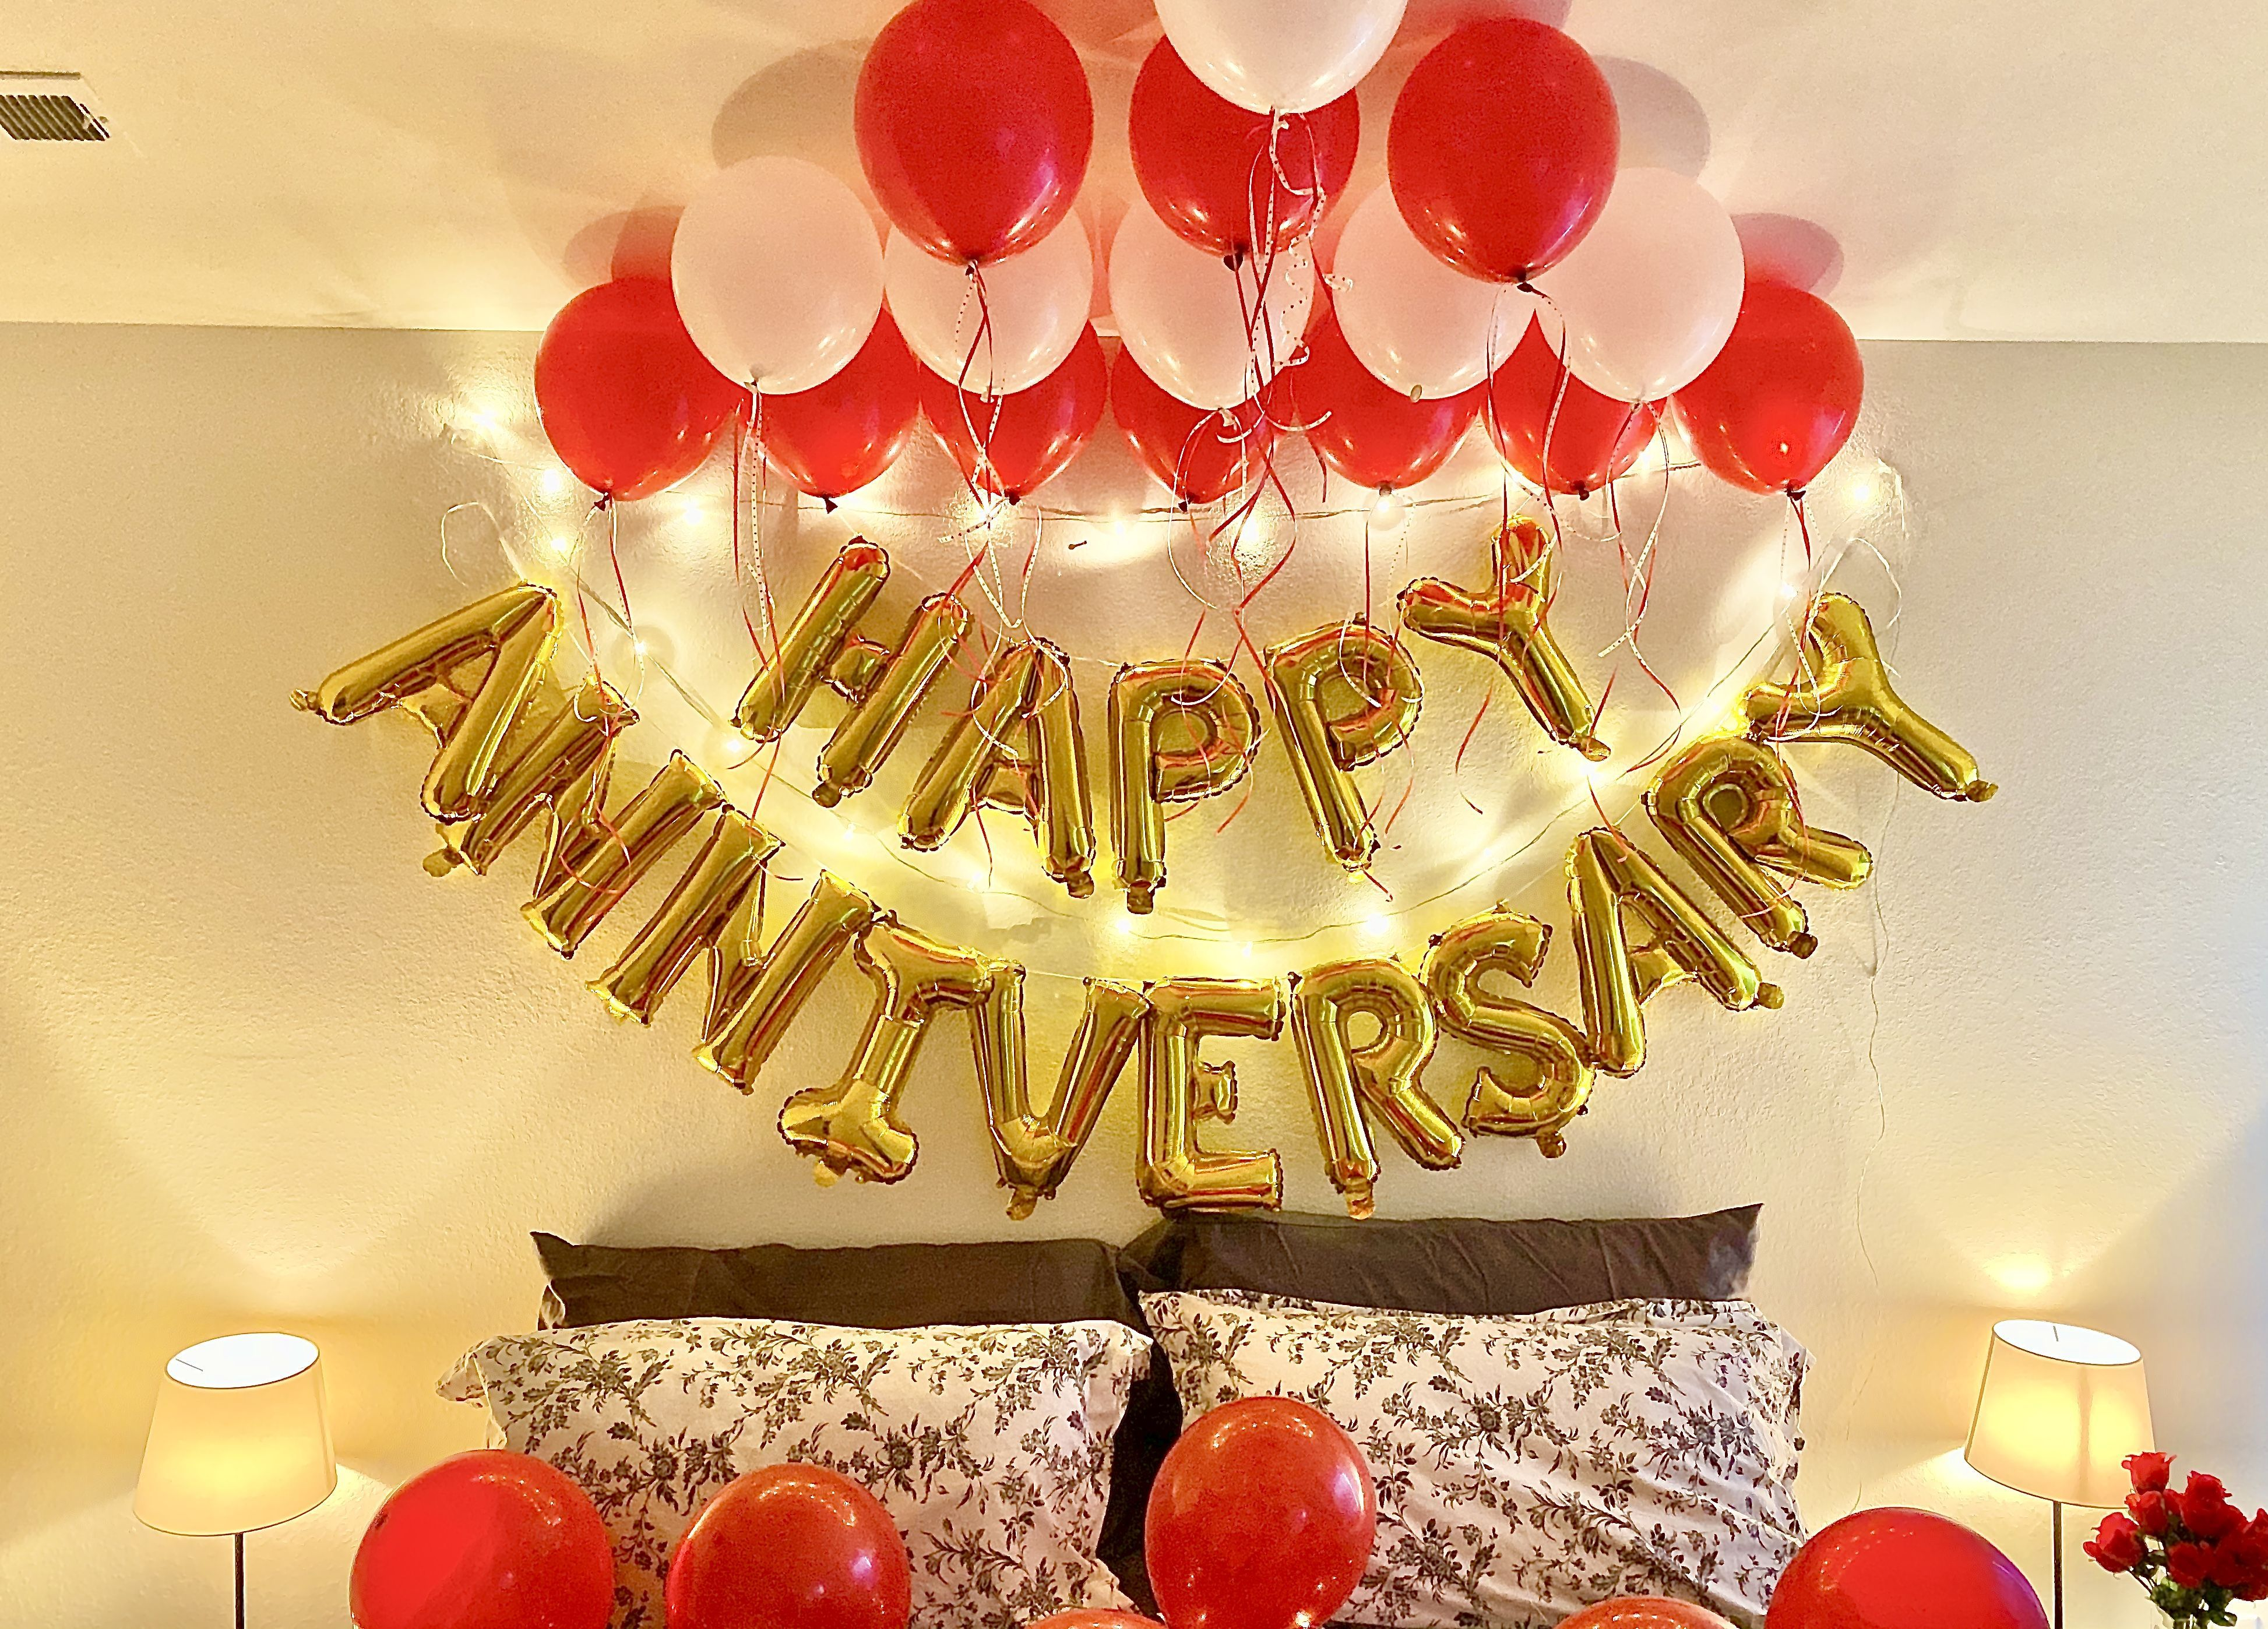 Happy Anniversary Balloons Happy Anniversary Unique Wedding Cards Balloons Balloon flower, balloon decoration ideas for birthday party at home | party decorations subscribe to my channel for more party decoration ideas. happy anniversary balloons happy